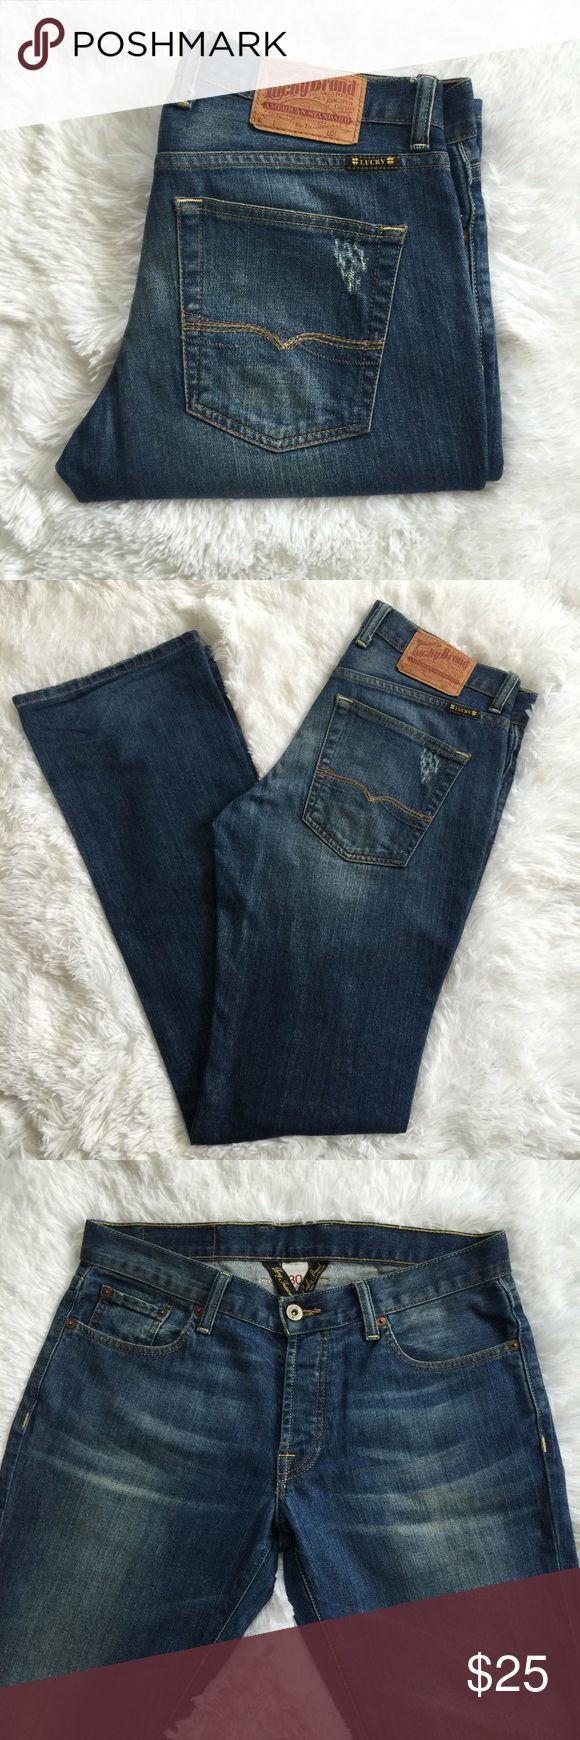 "Mens Lucky Brand Jeans Lucky Brand Bootcut Jeans / Long Inseam 35"" / Slim Bootleg / Good Condition Lucky Brand Jeans Straight"